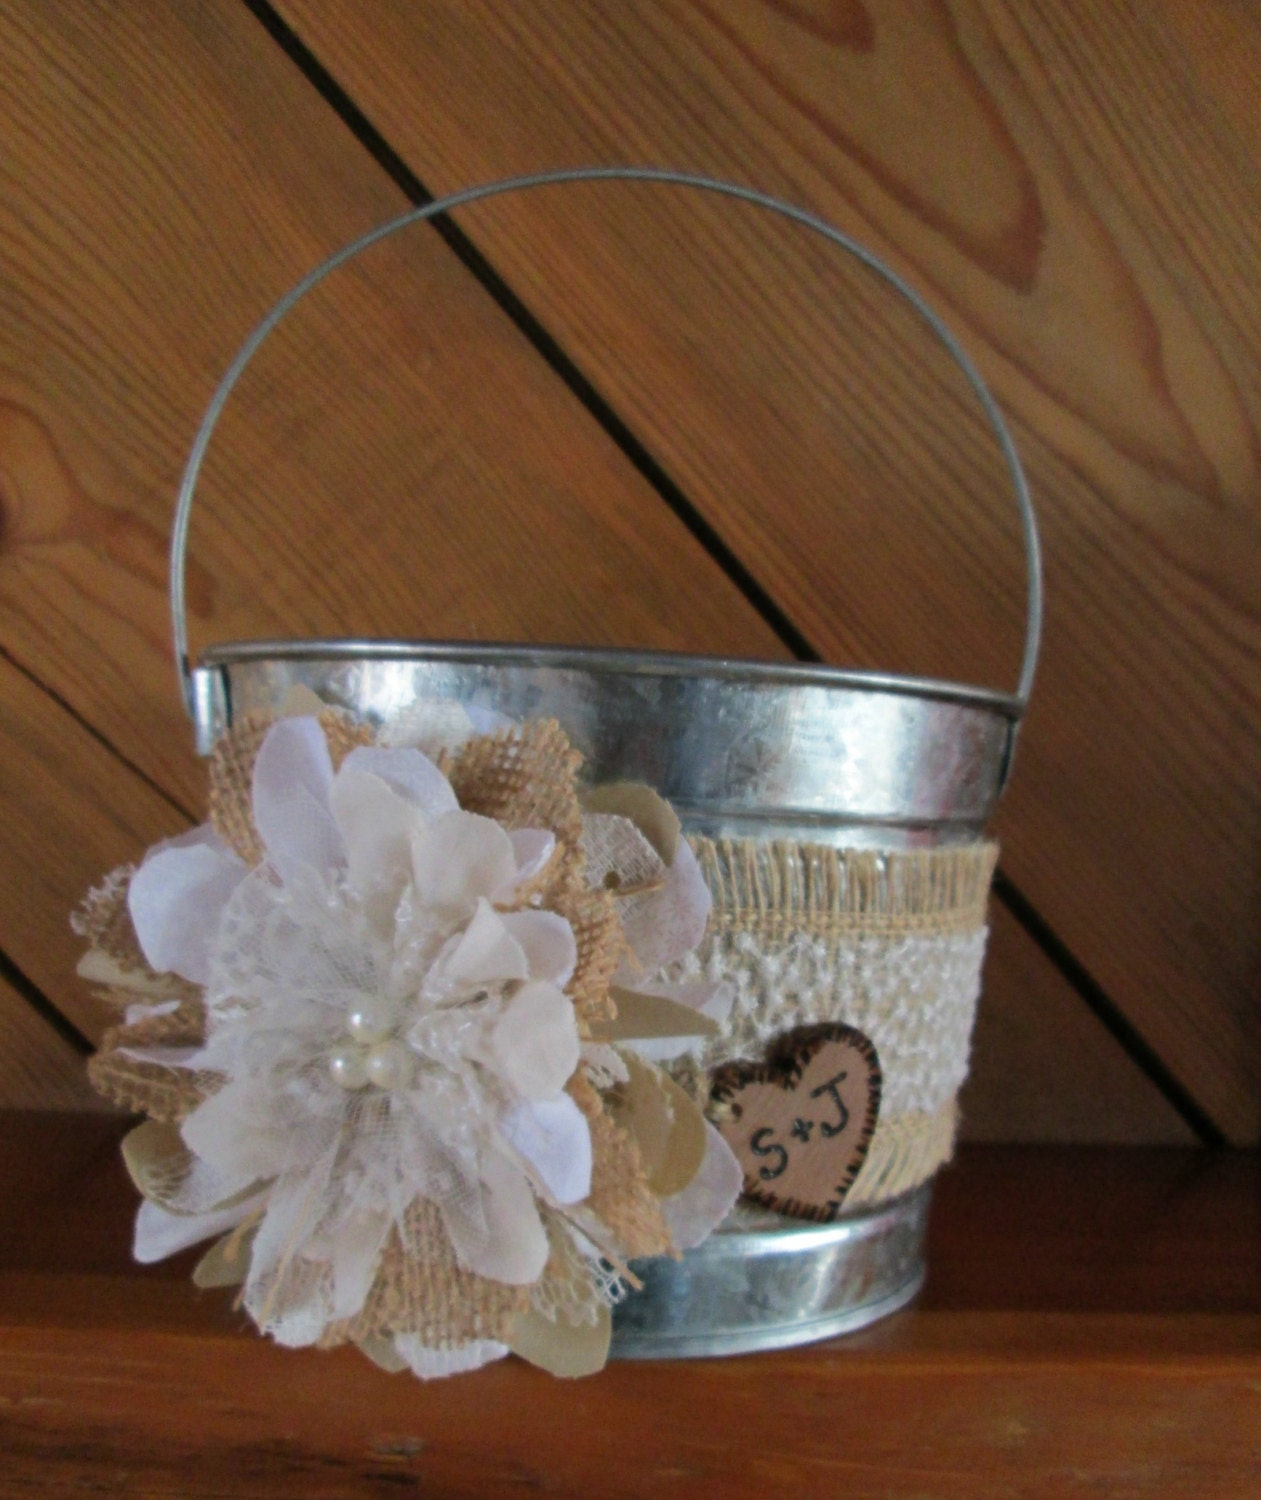 How To Make A Lace Flower Girl Basket : Personalized flower girl bucket burlap and lace wedding